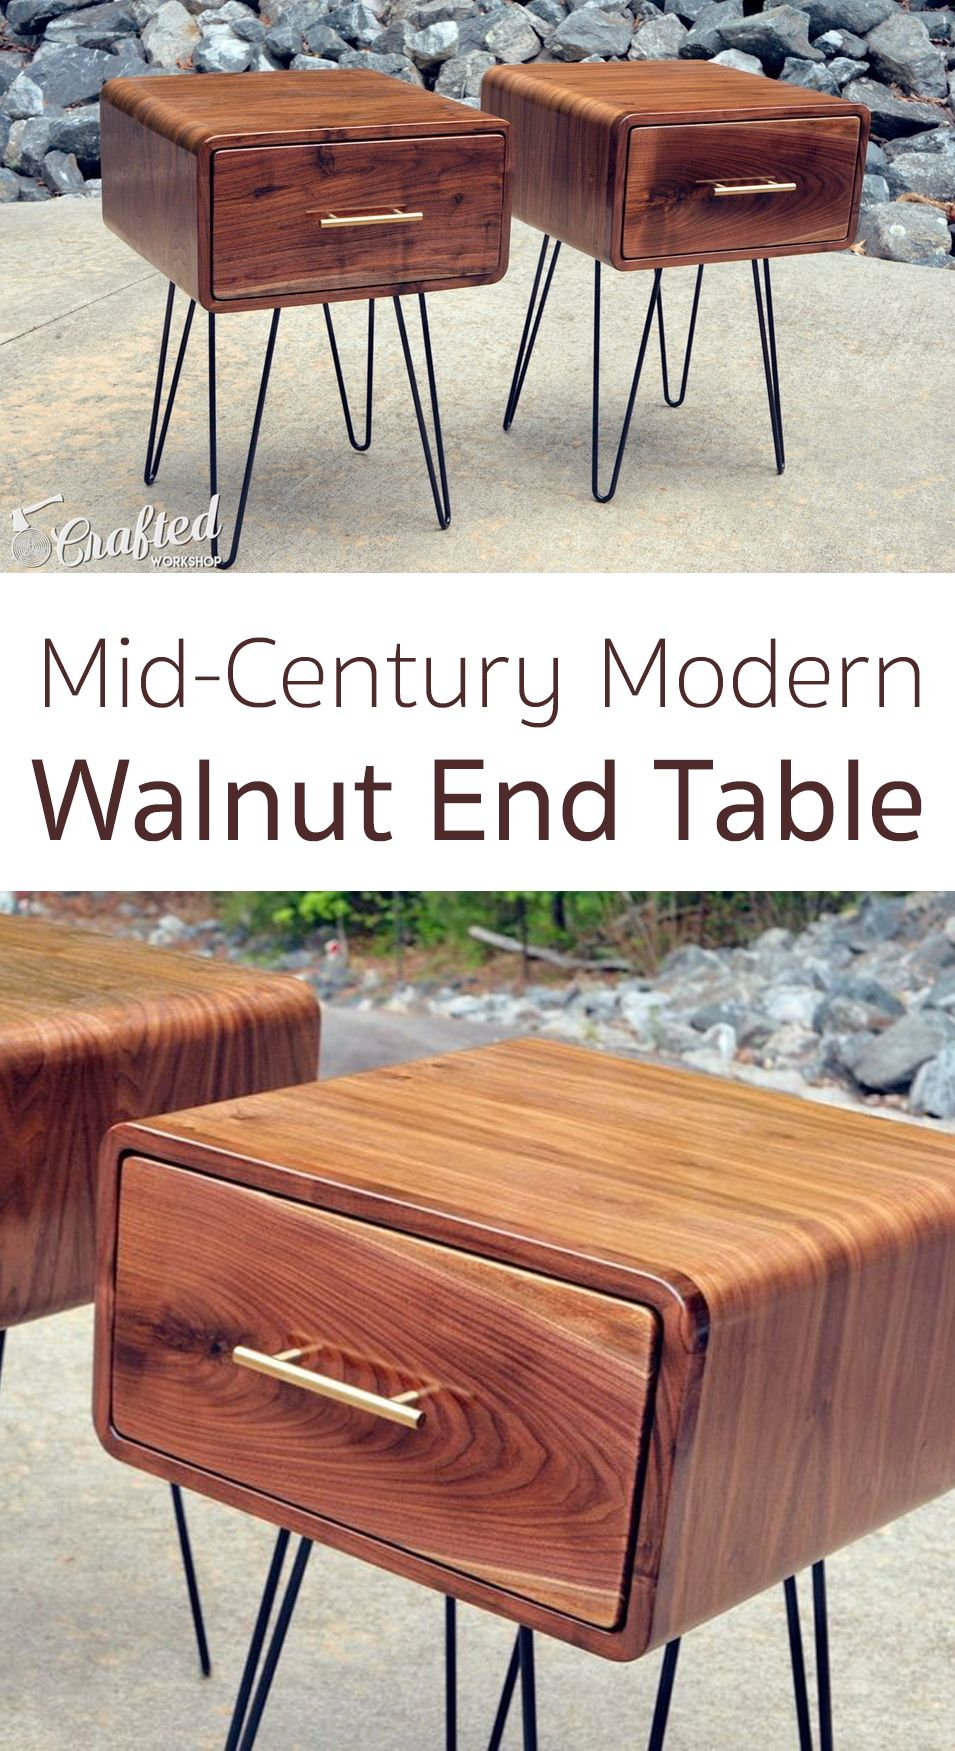 Mid Century Modern Walnut End Table Workshop Projects Midcentury